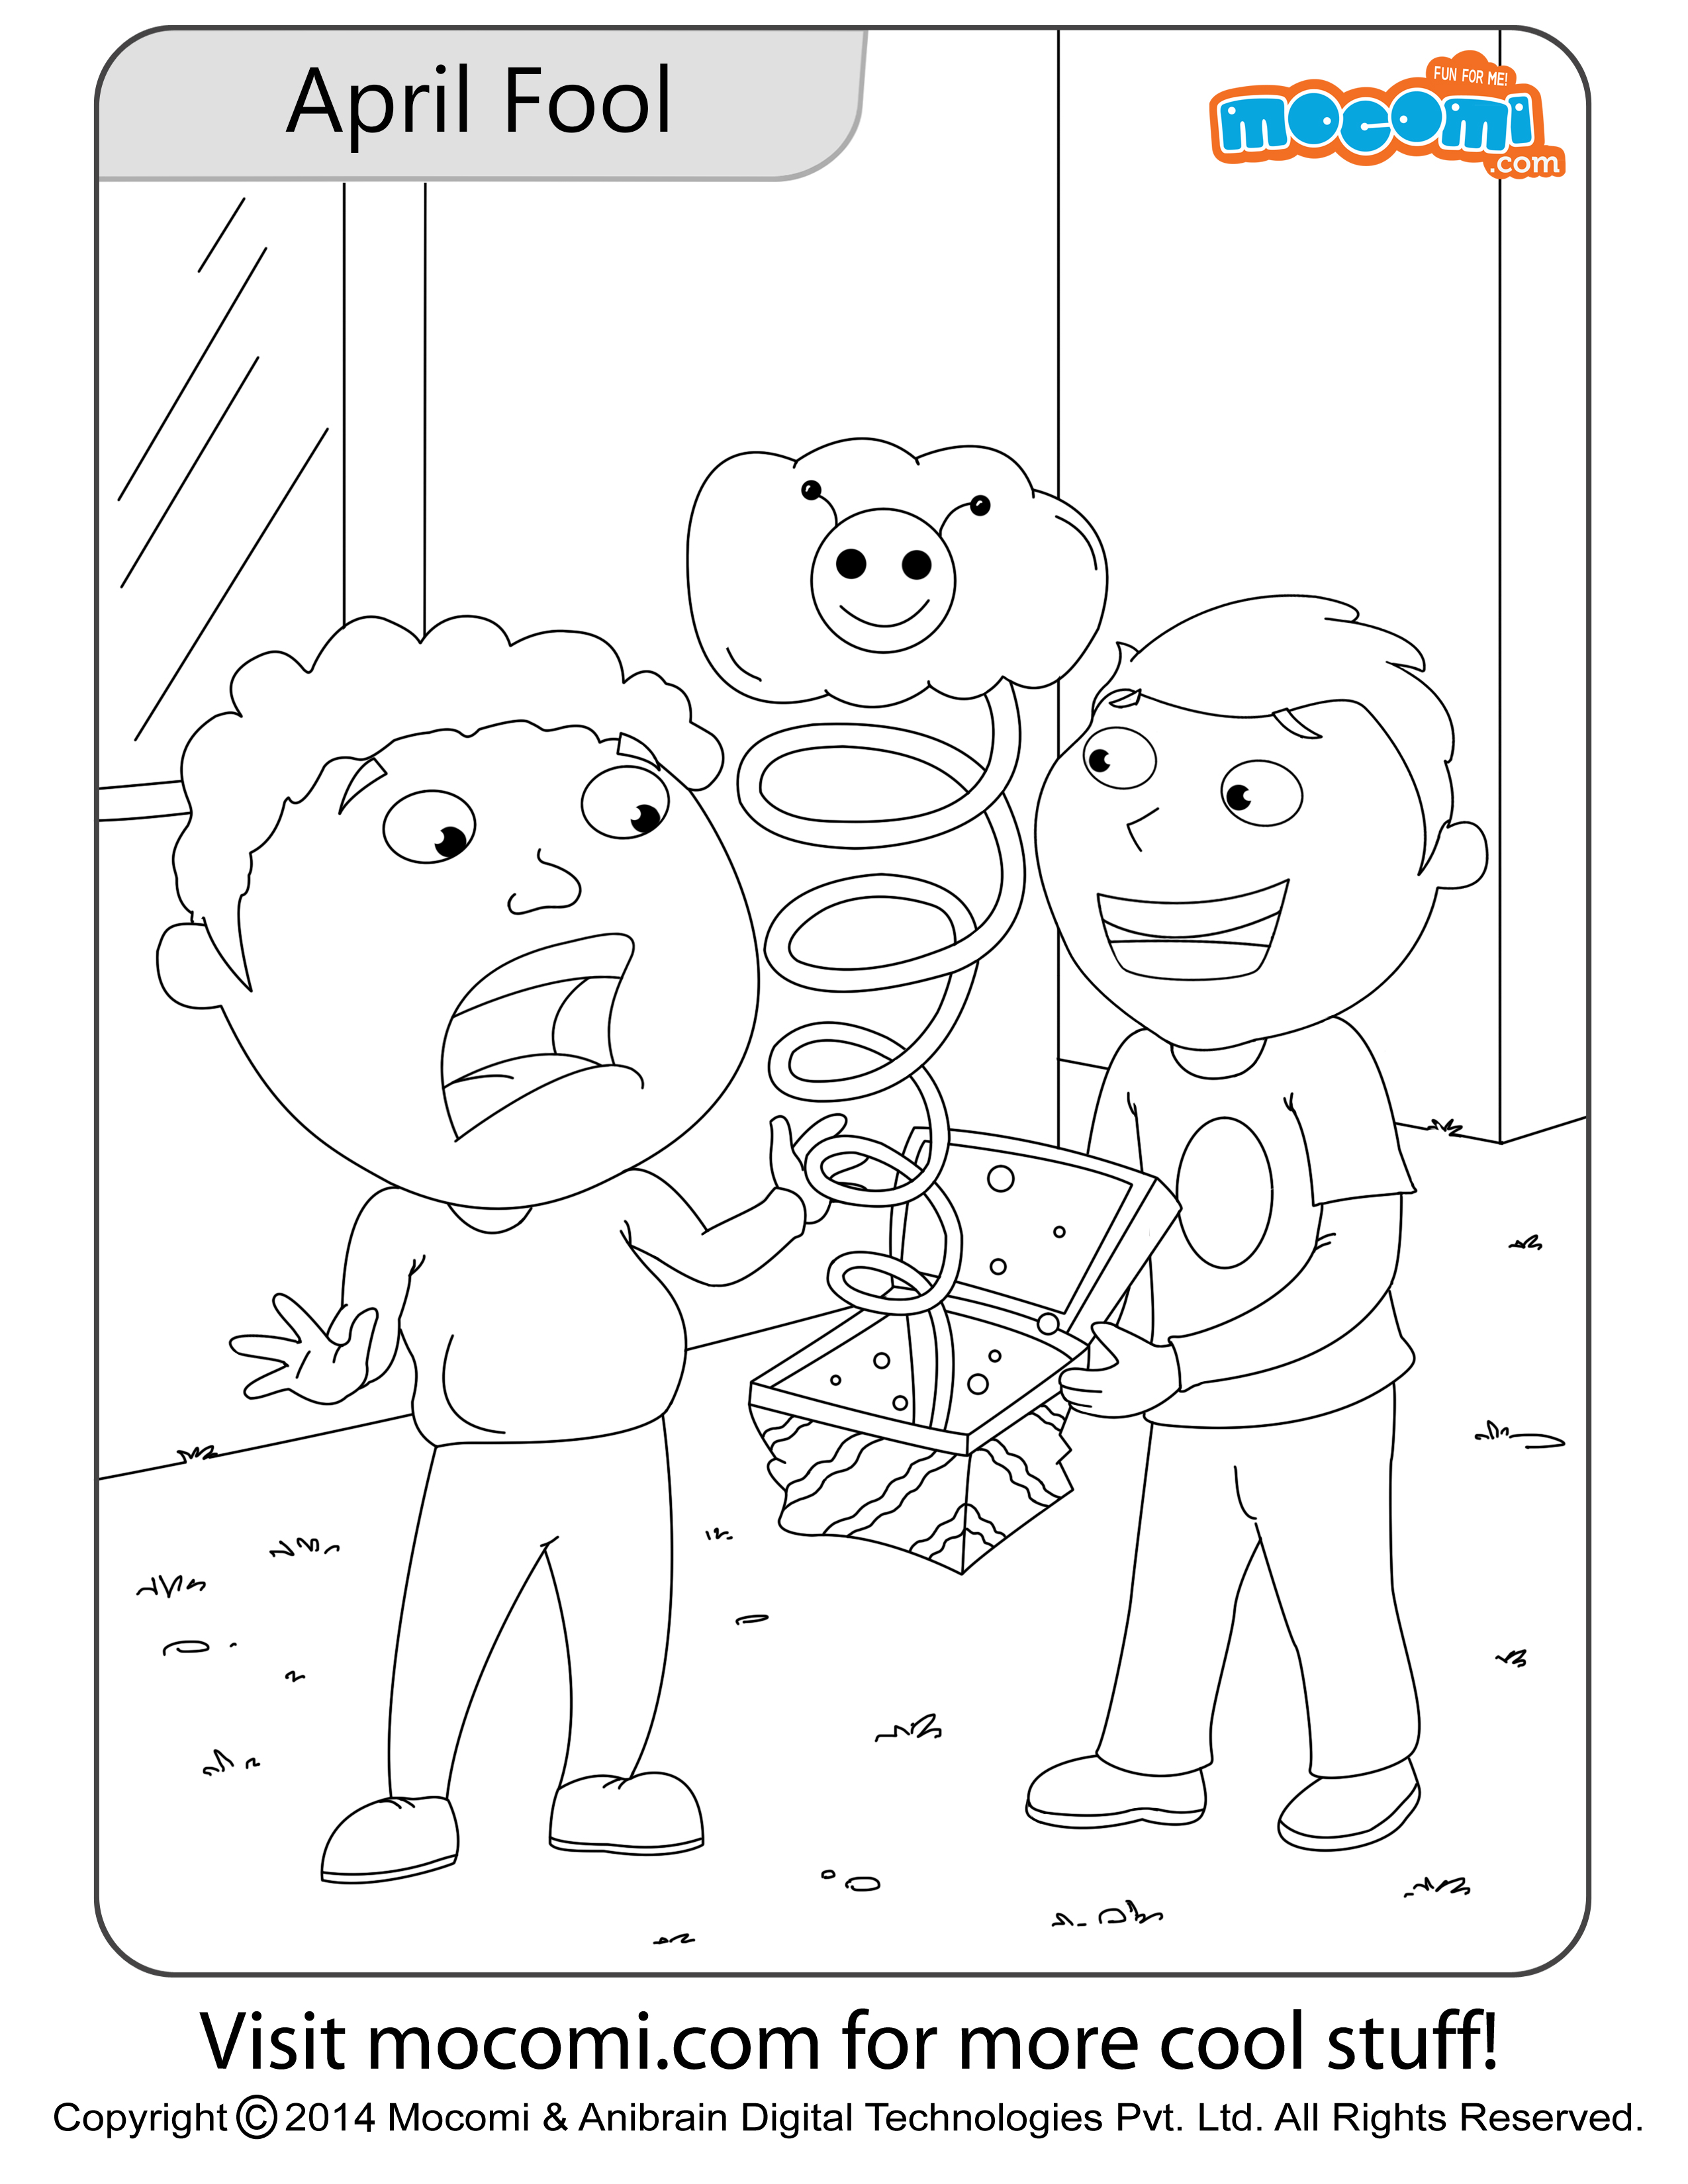 April Fool – Colouring Page